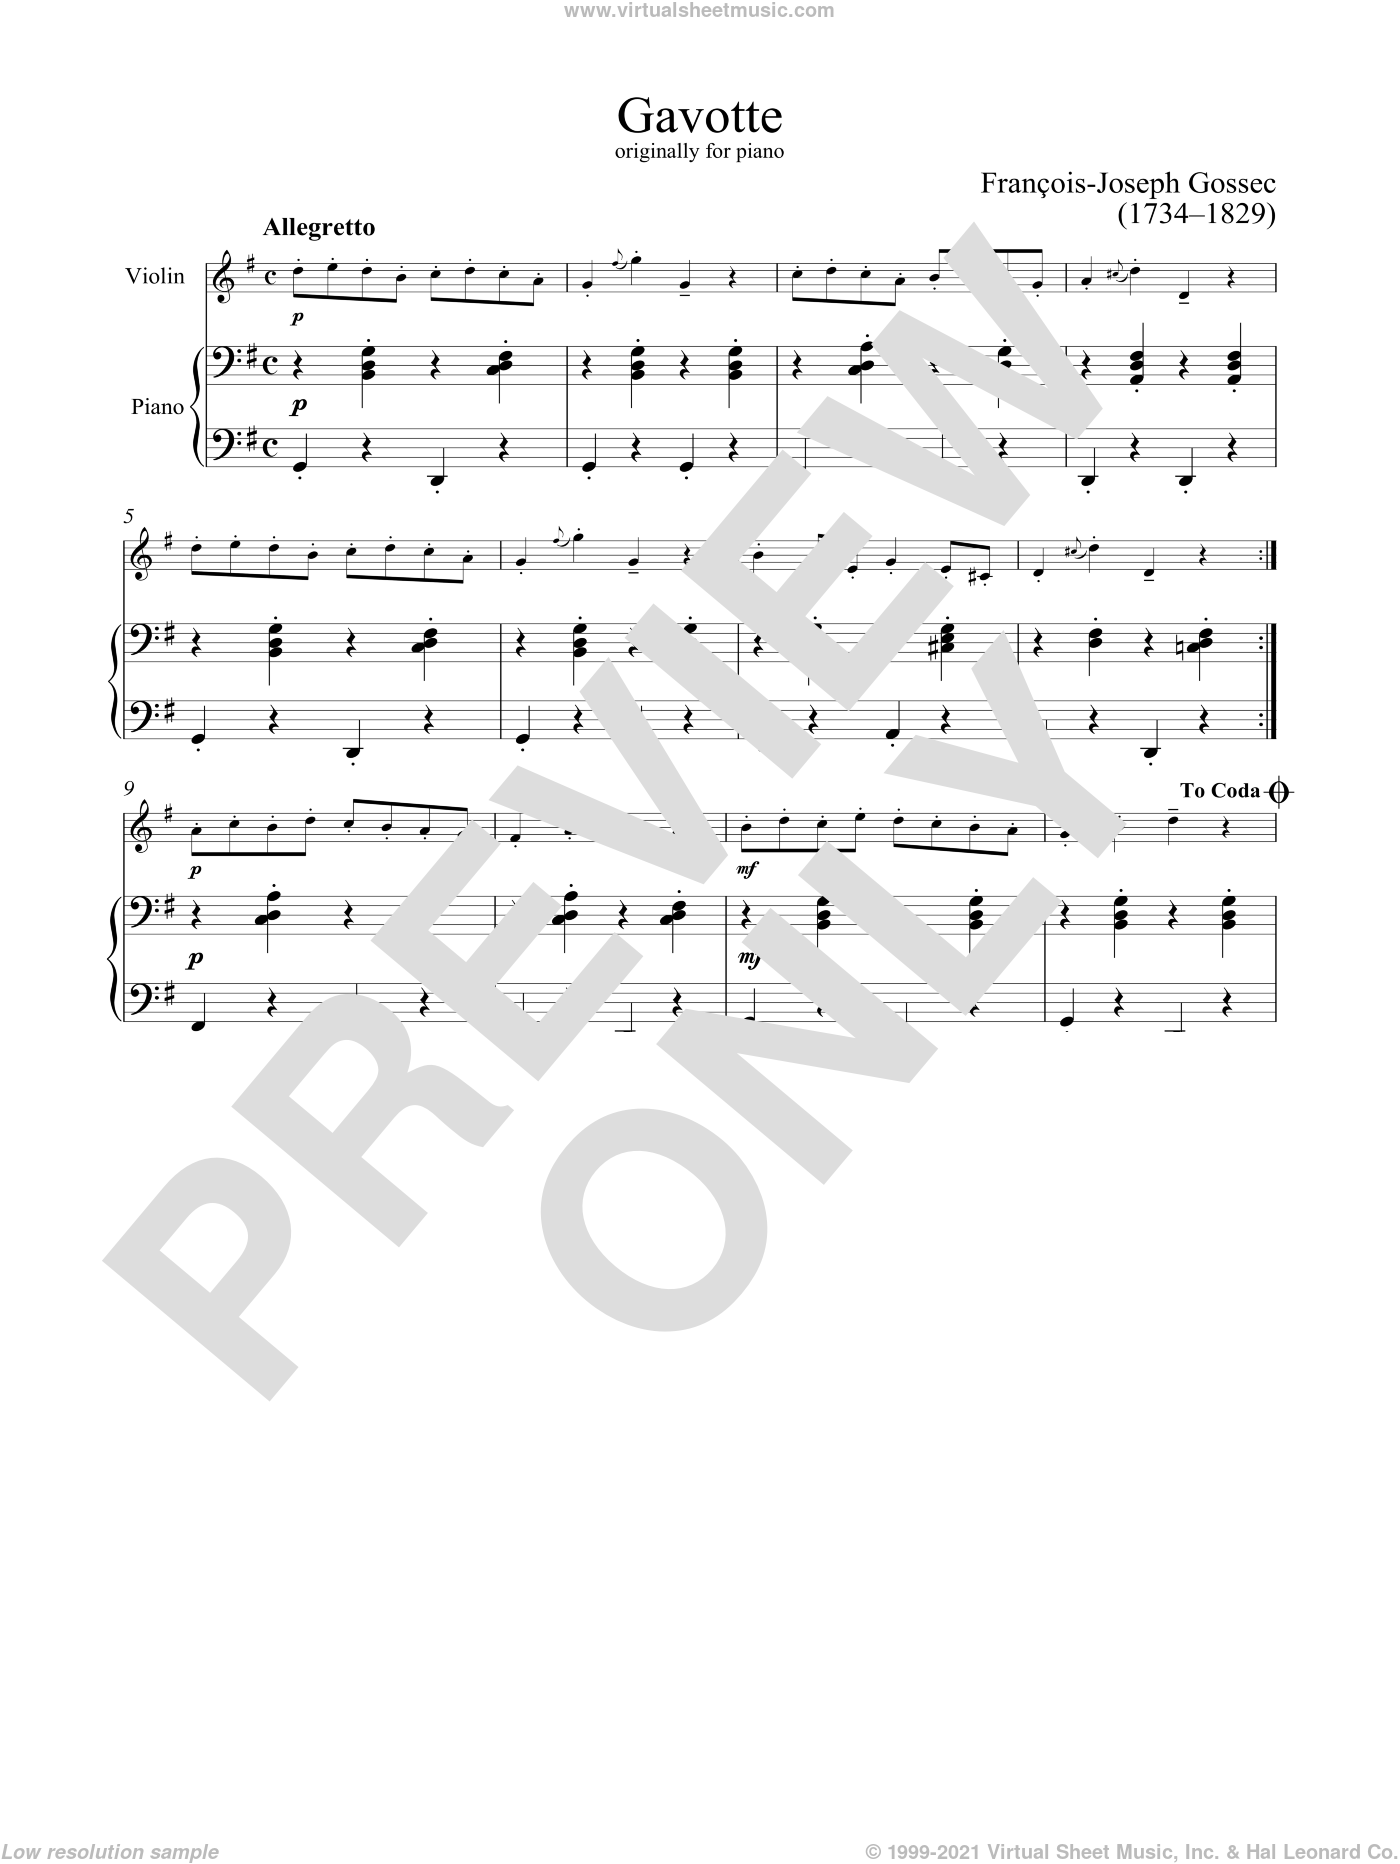 Gavotte sheet music for violin and piano by Francois-Joseph Gossec, classical score, intermediate skill level